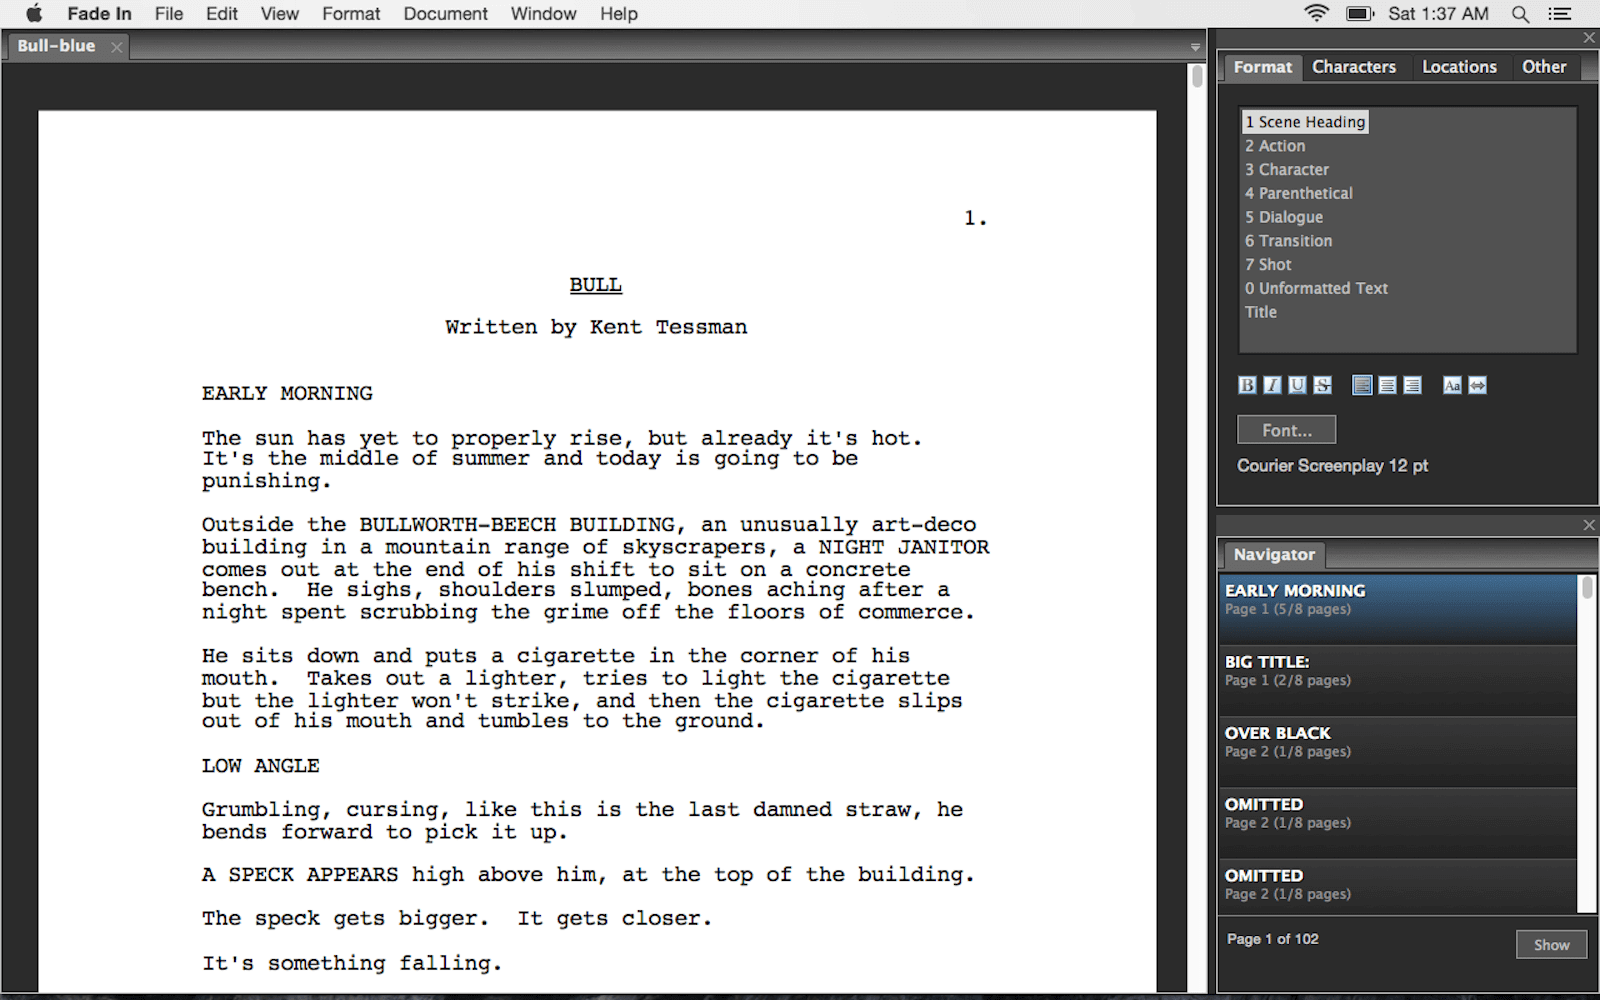 Best Free Script Writing Software for Professional Screenwriters - TV and Film - Fade In Script Writing Software